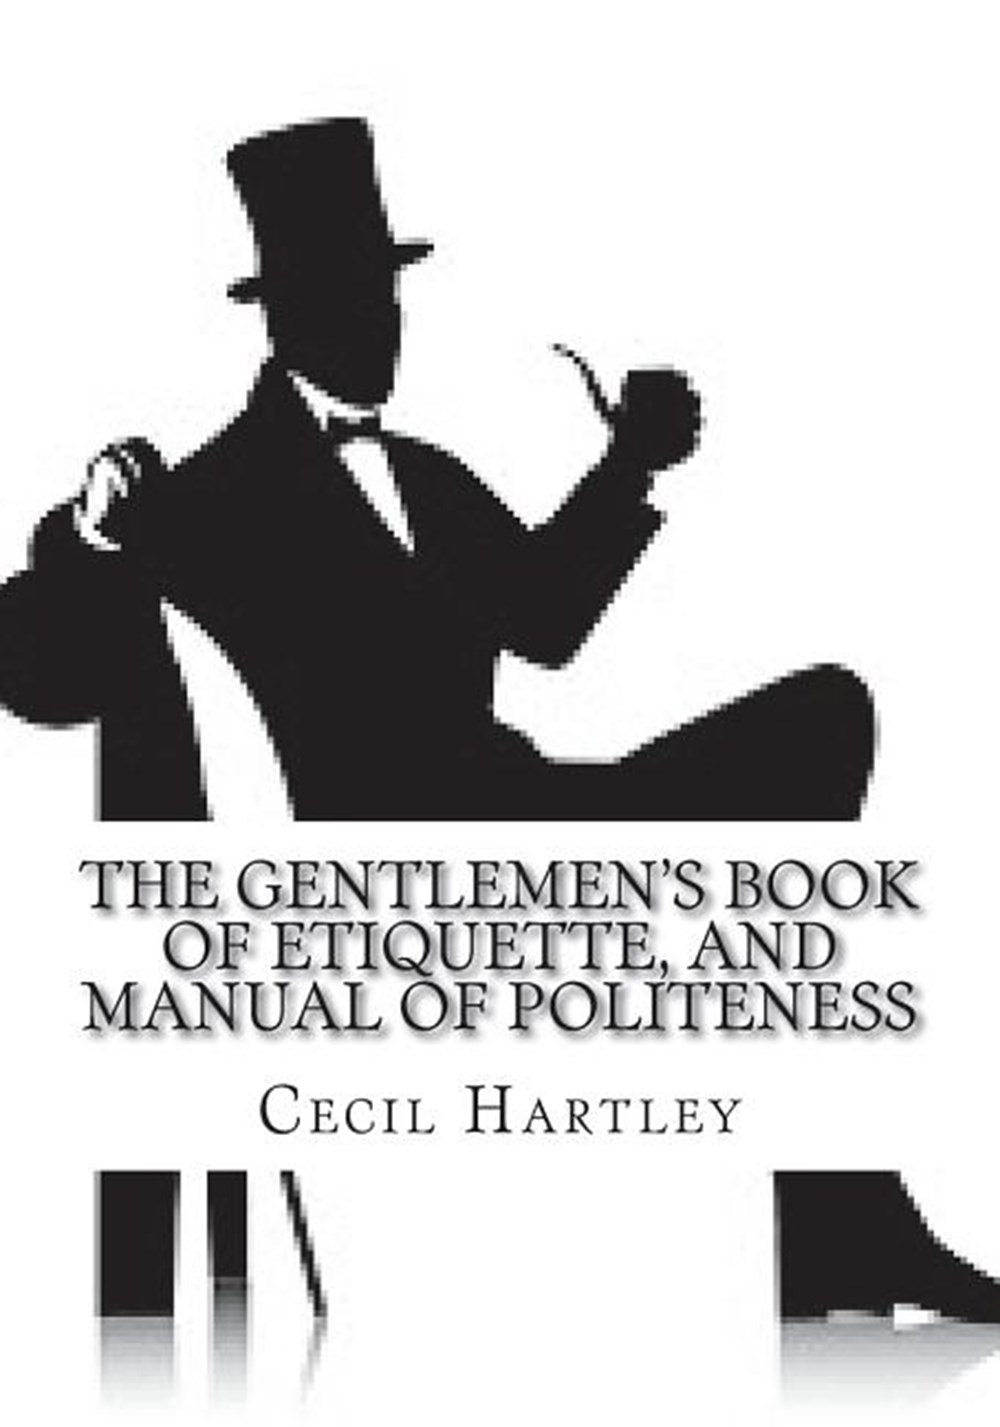 Gentlemen's Book of Etiquette, and Manual of Politeness